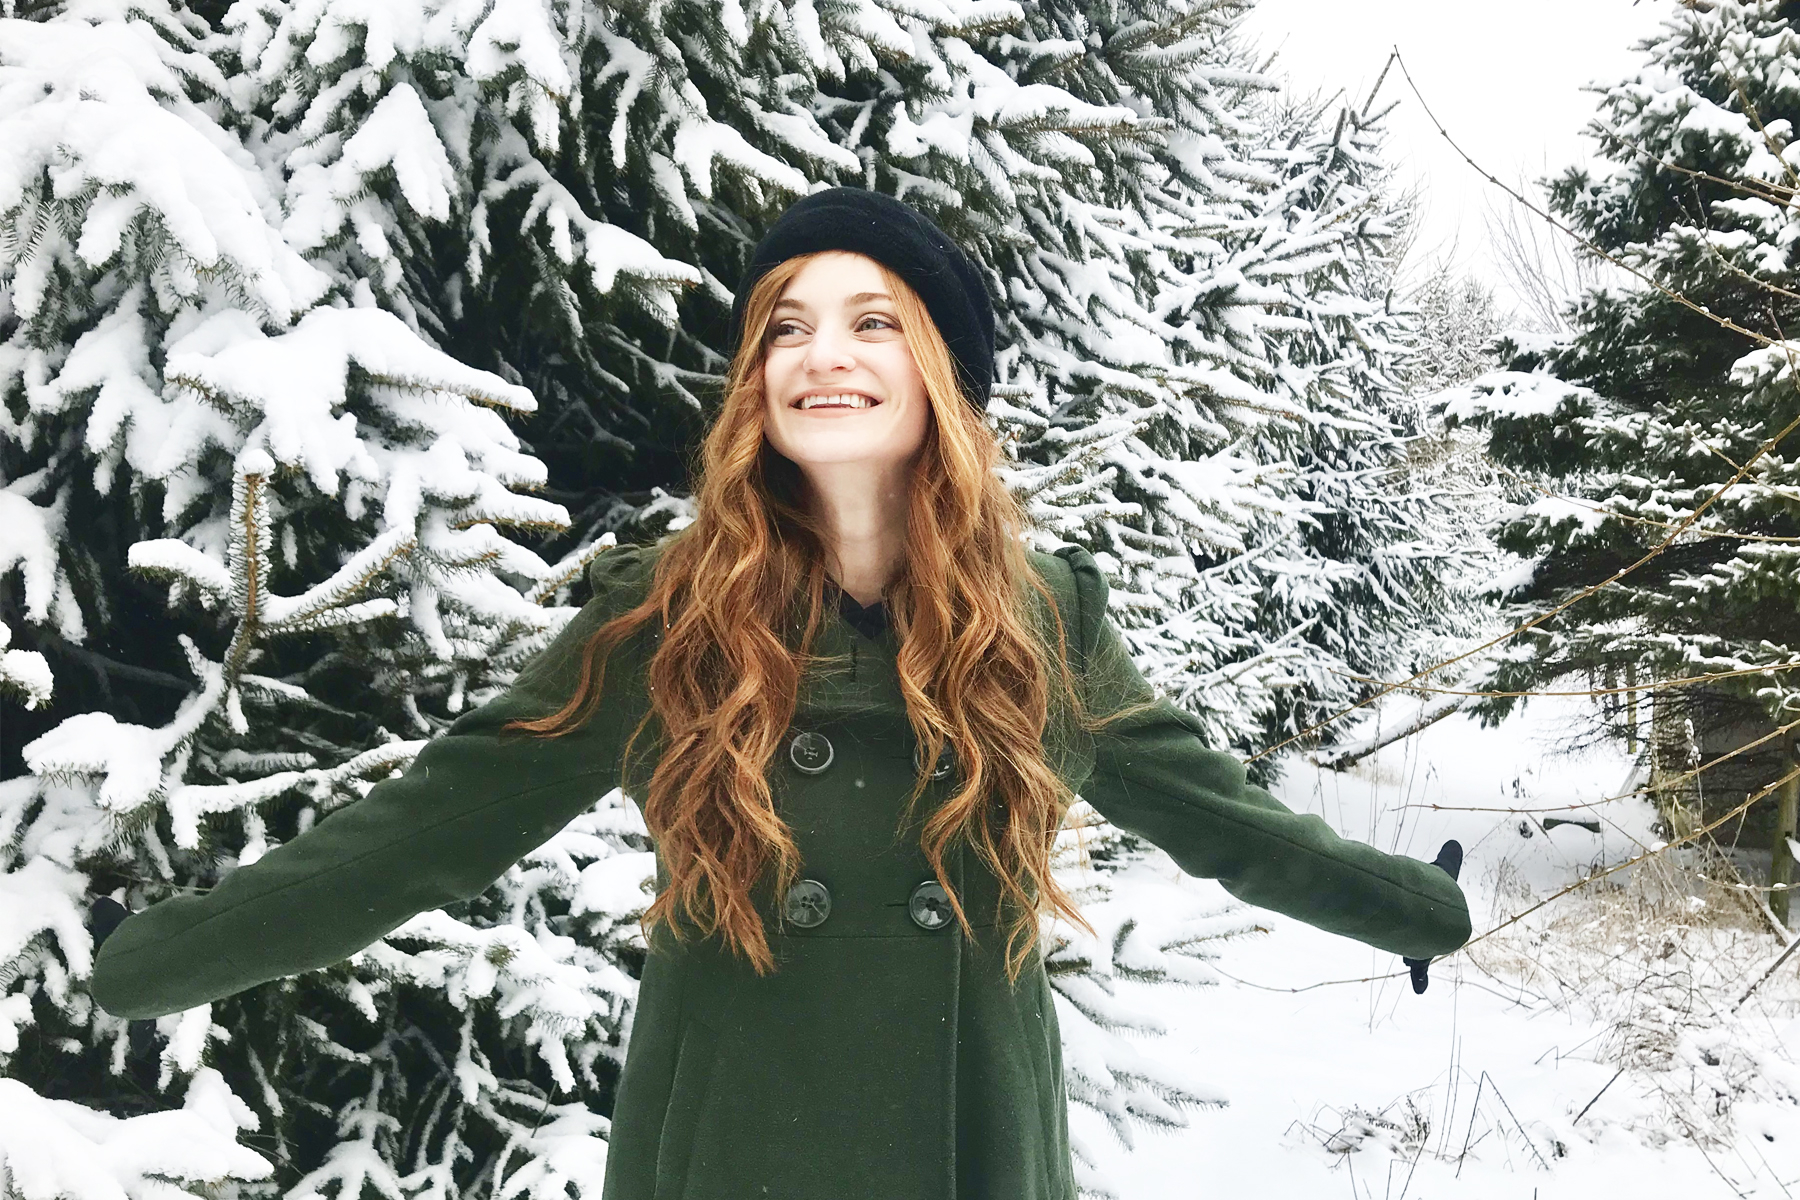 Erin Leigh of She's Red Haute standing in snow wearing green coat